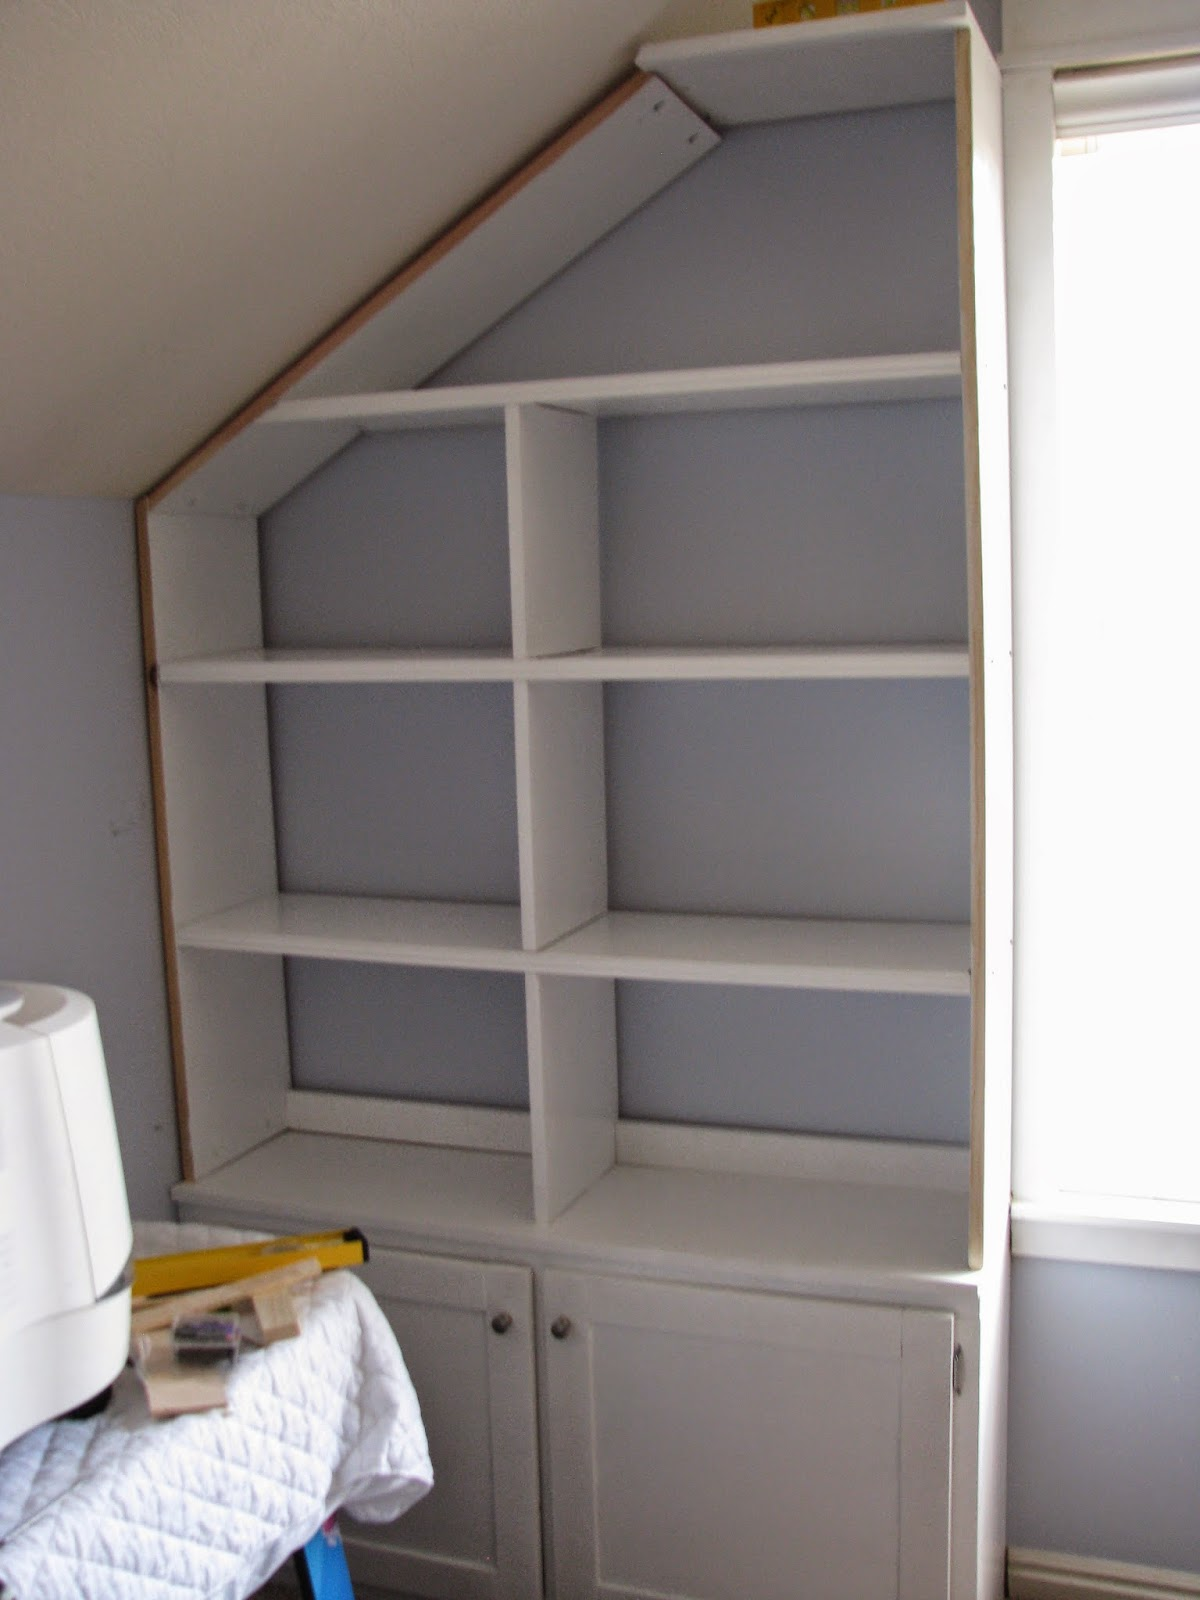 My So Called Diy Blog Project Bonus Room Built In Shelves With A